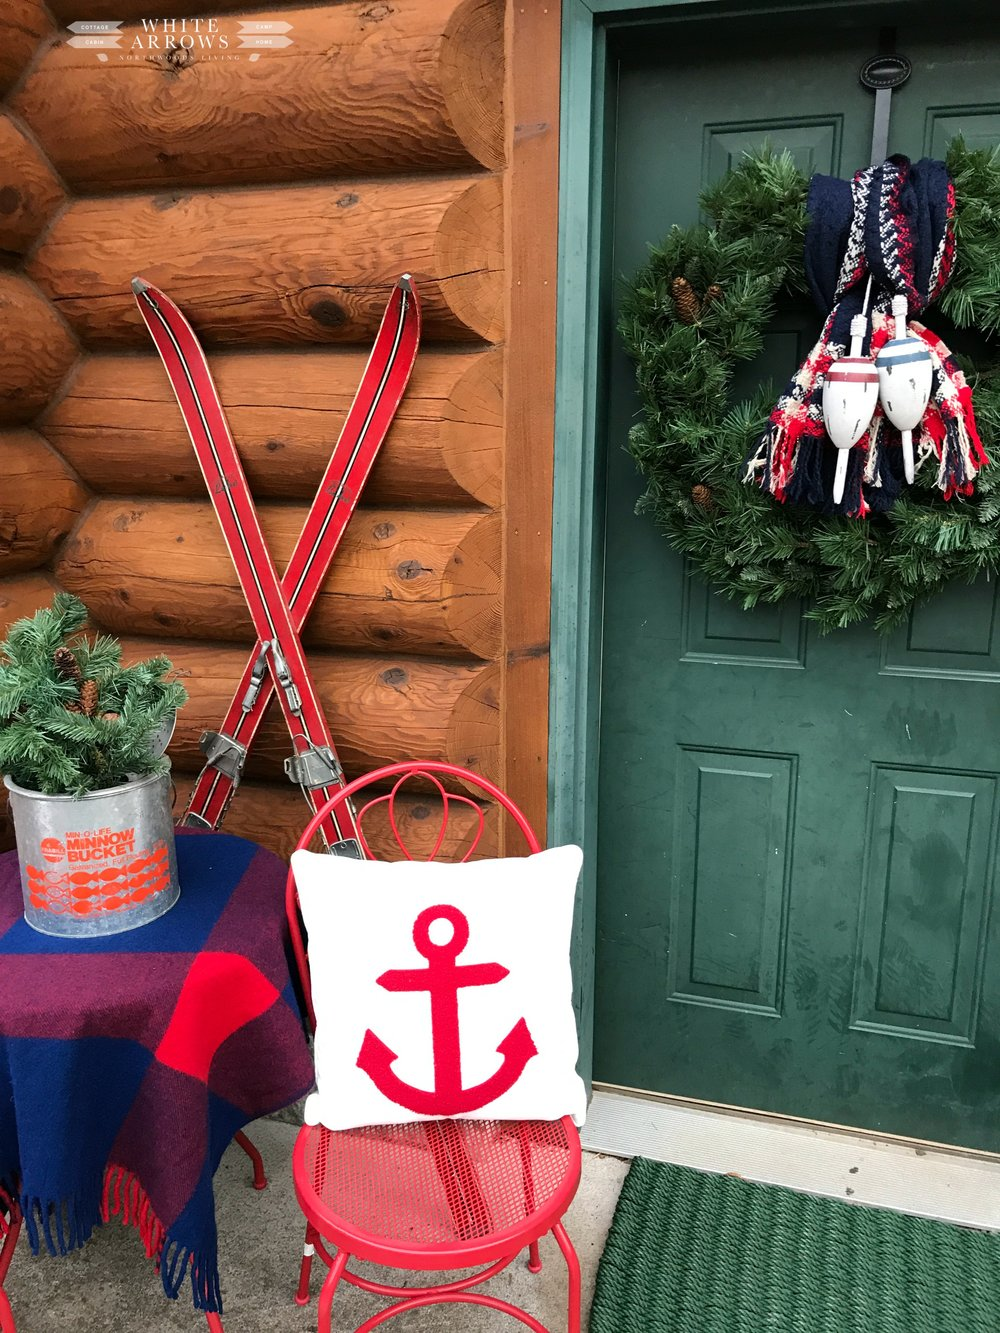 Lake House Holiday, Boathouse wreath on door